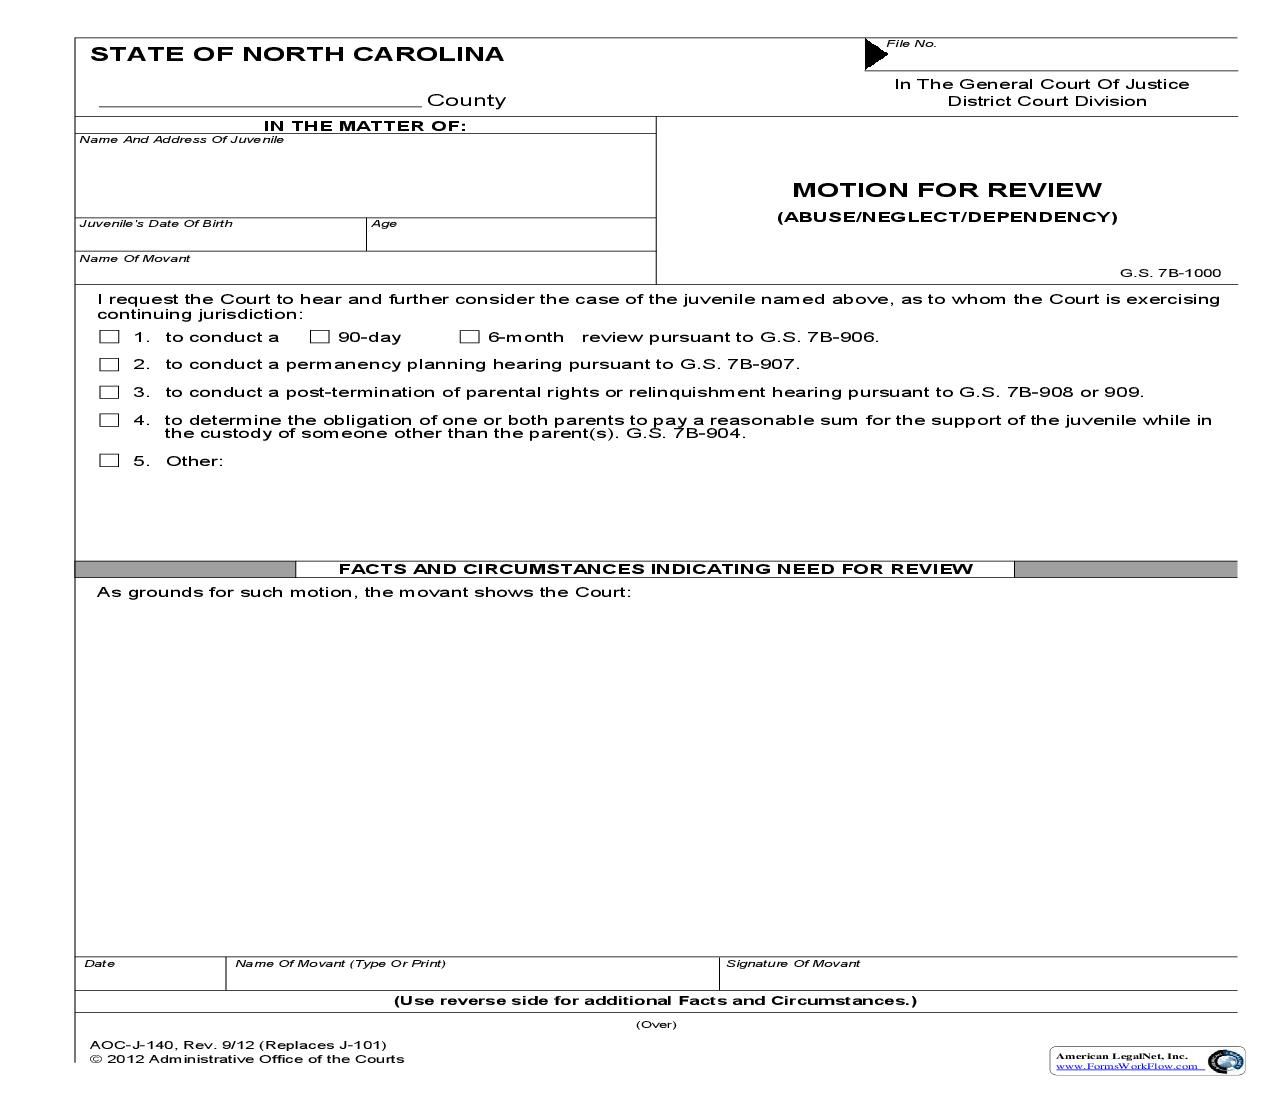 Motion For Review Abuse Neglect Dependency {J-140} | Pdf Fpdf Doc Docx | North Carolina